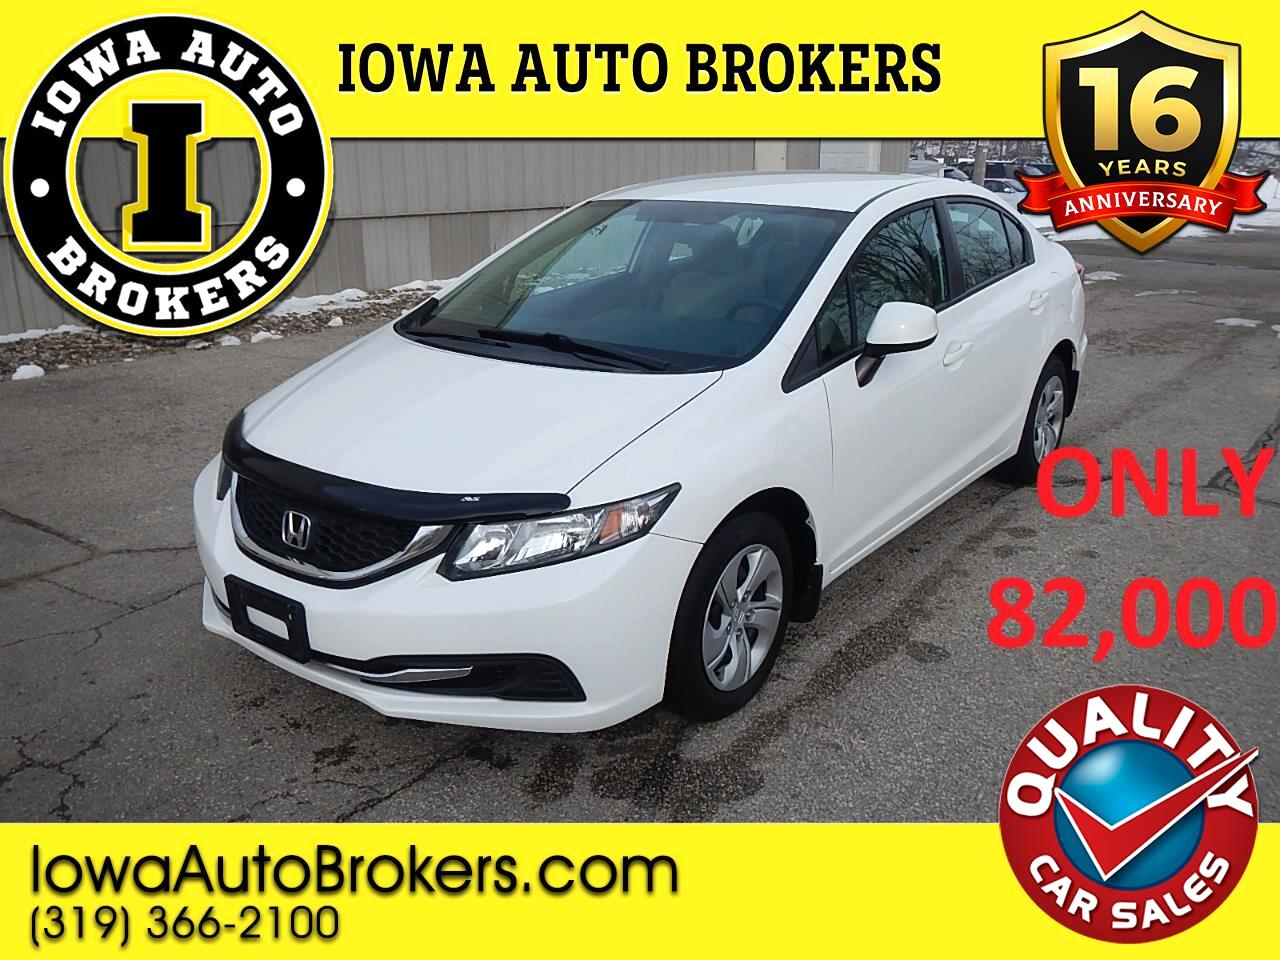 Honda Civic 4dr Sedan LX Auto 2013